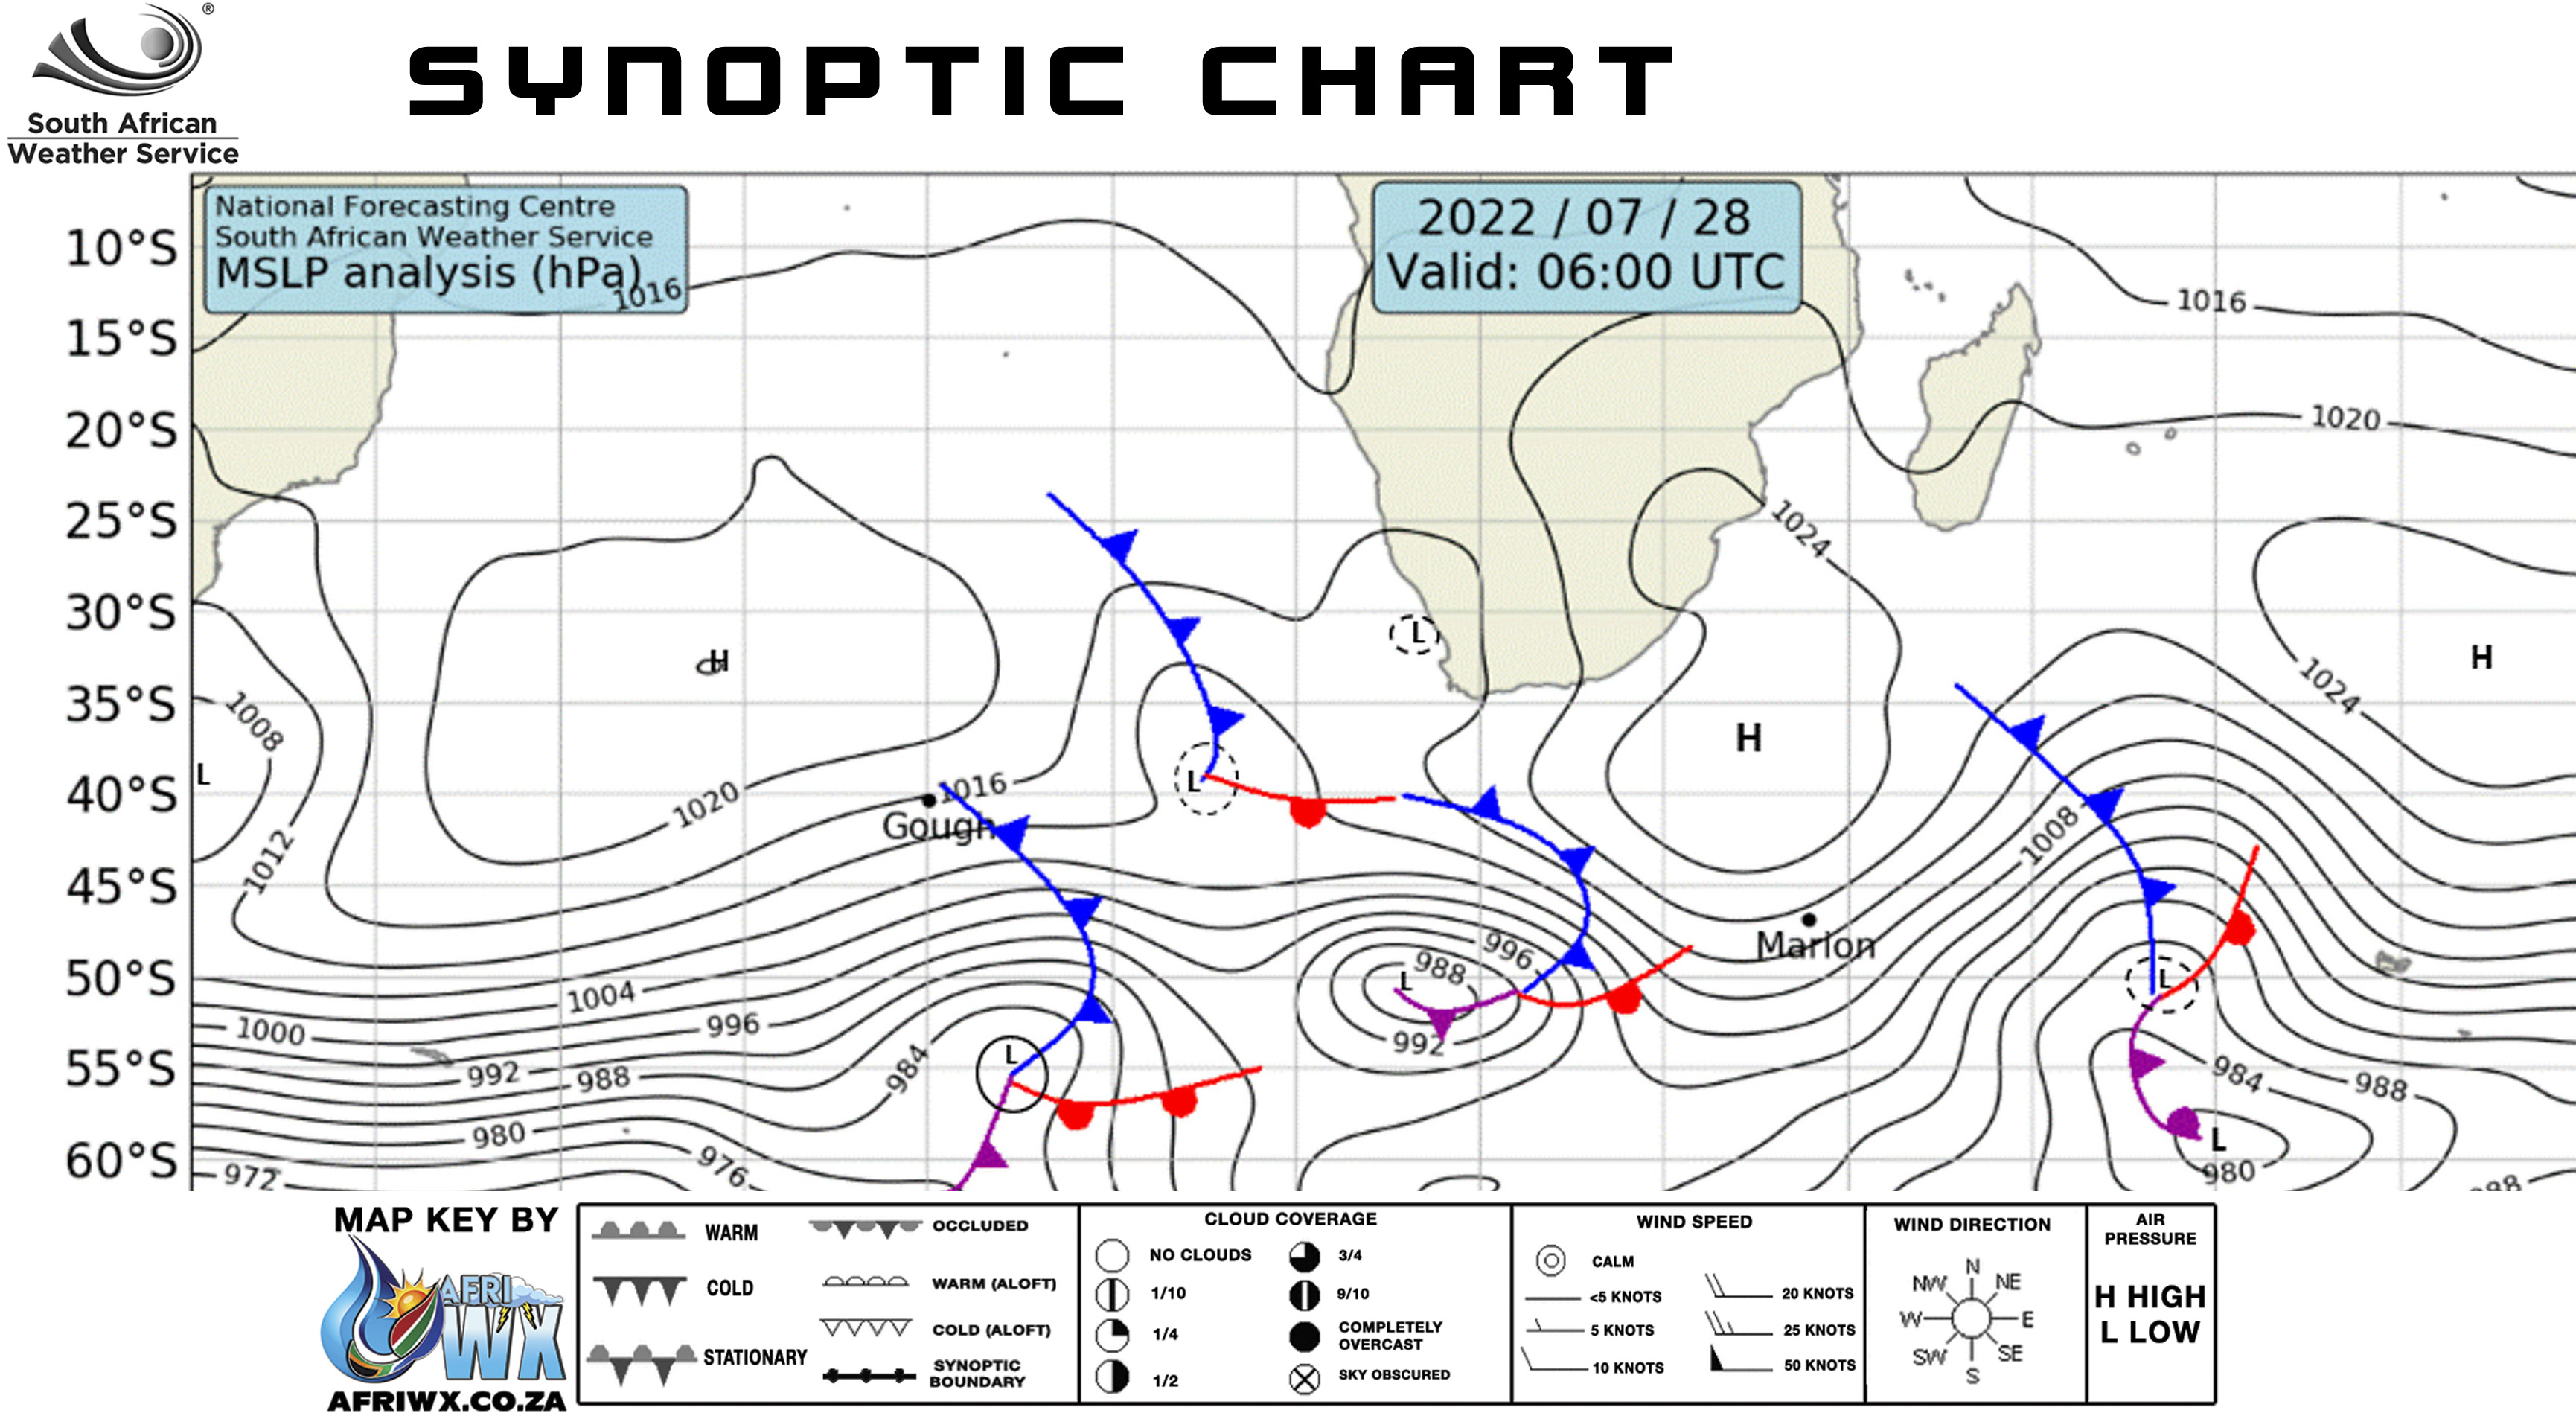 Synoptic Weather Chart For South Africa From Sa Weather Service